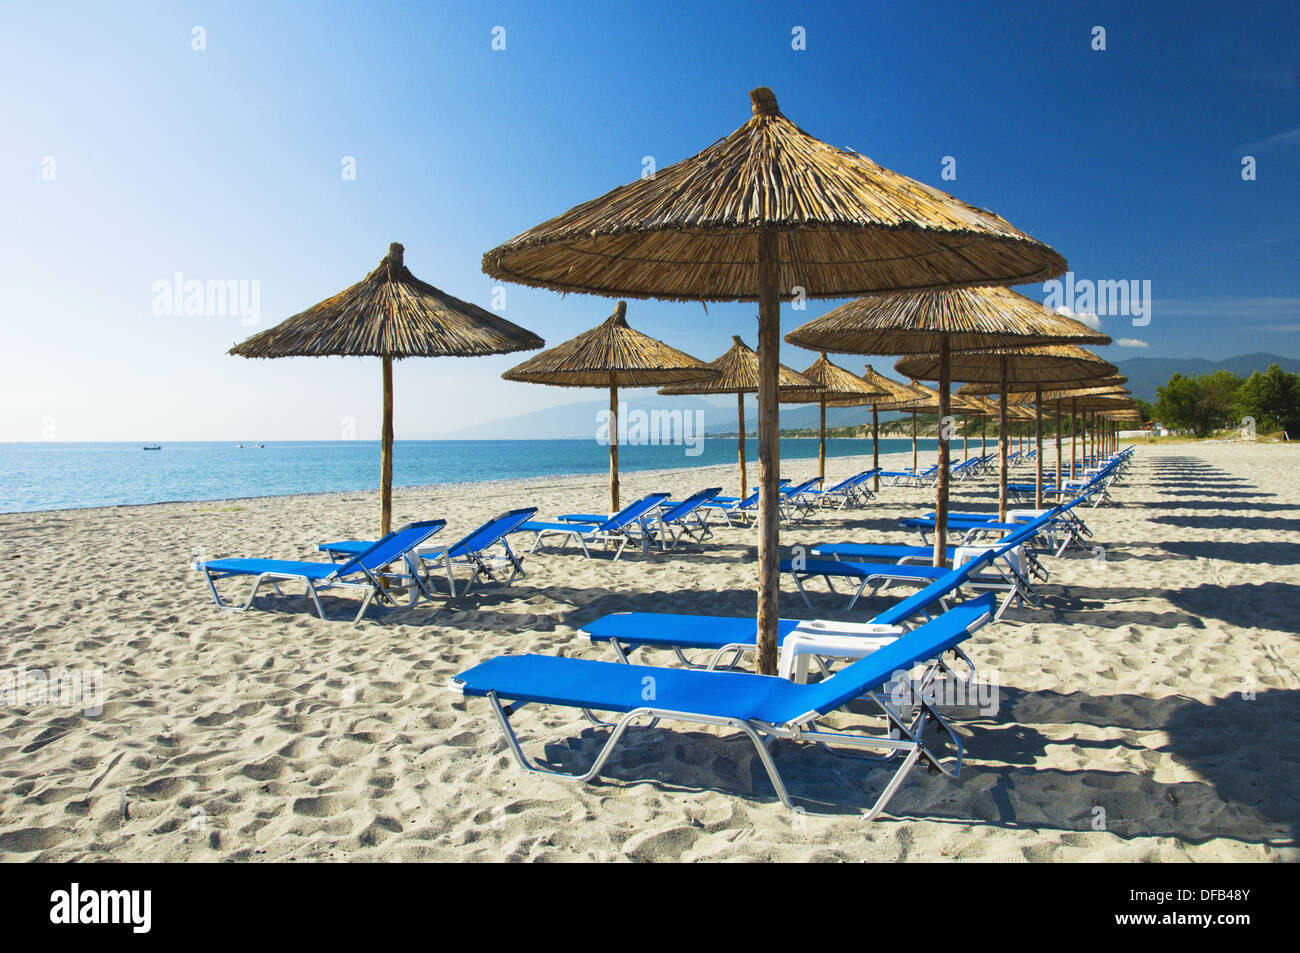 Thatched Roof Umbrellas And Blue Lounge Chairs On The Beach At The Dion  Palace Resort In Litohoro, Greece